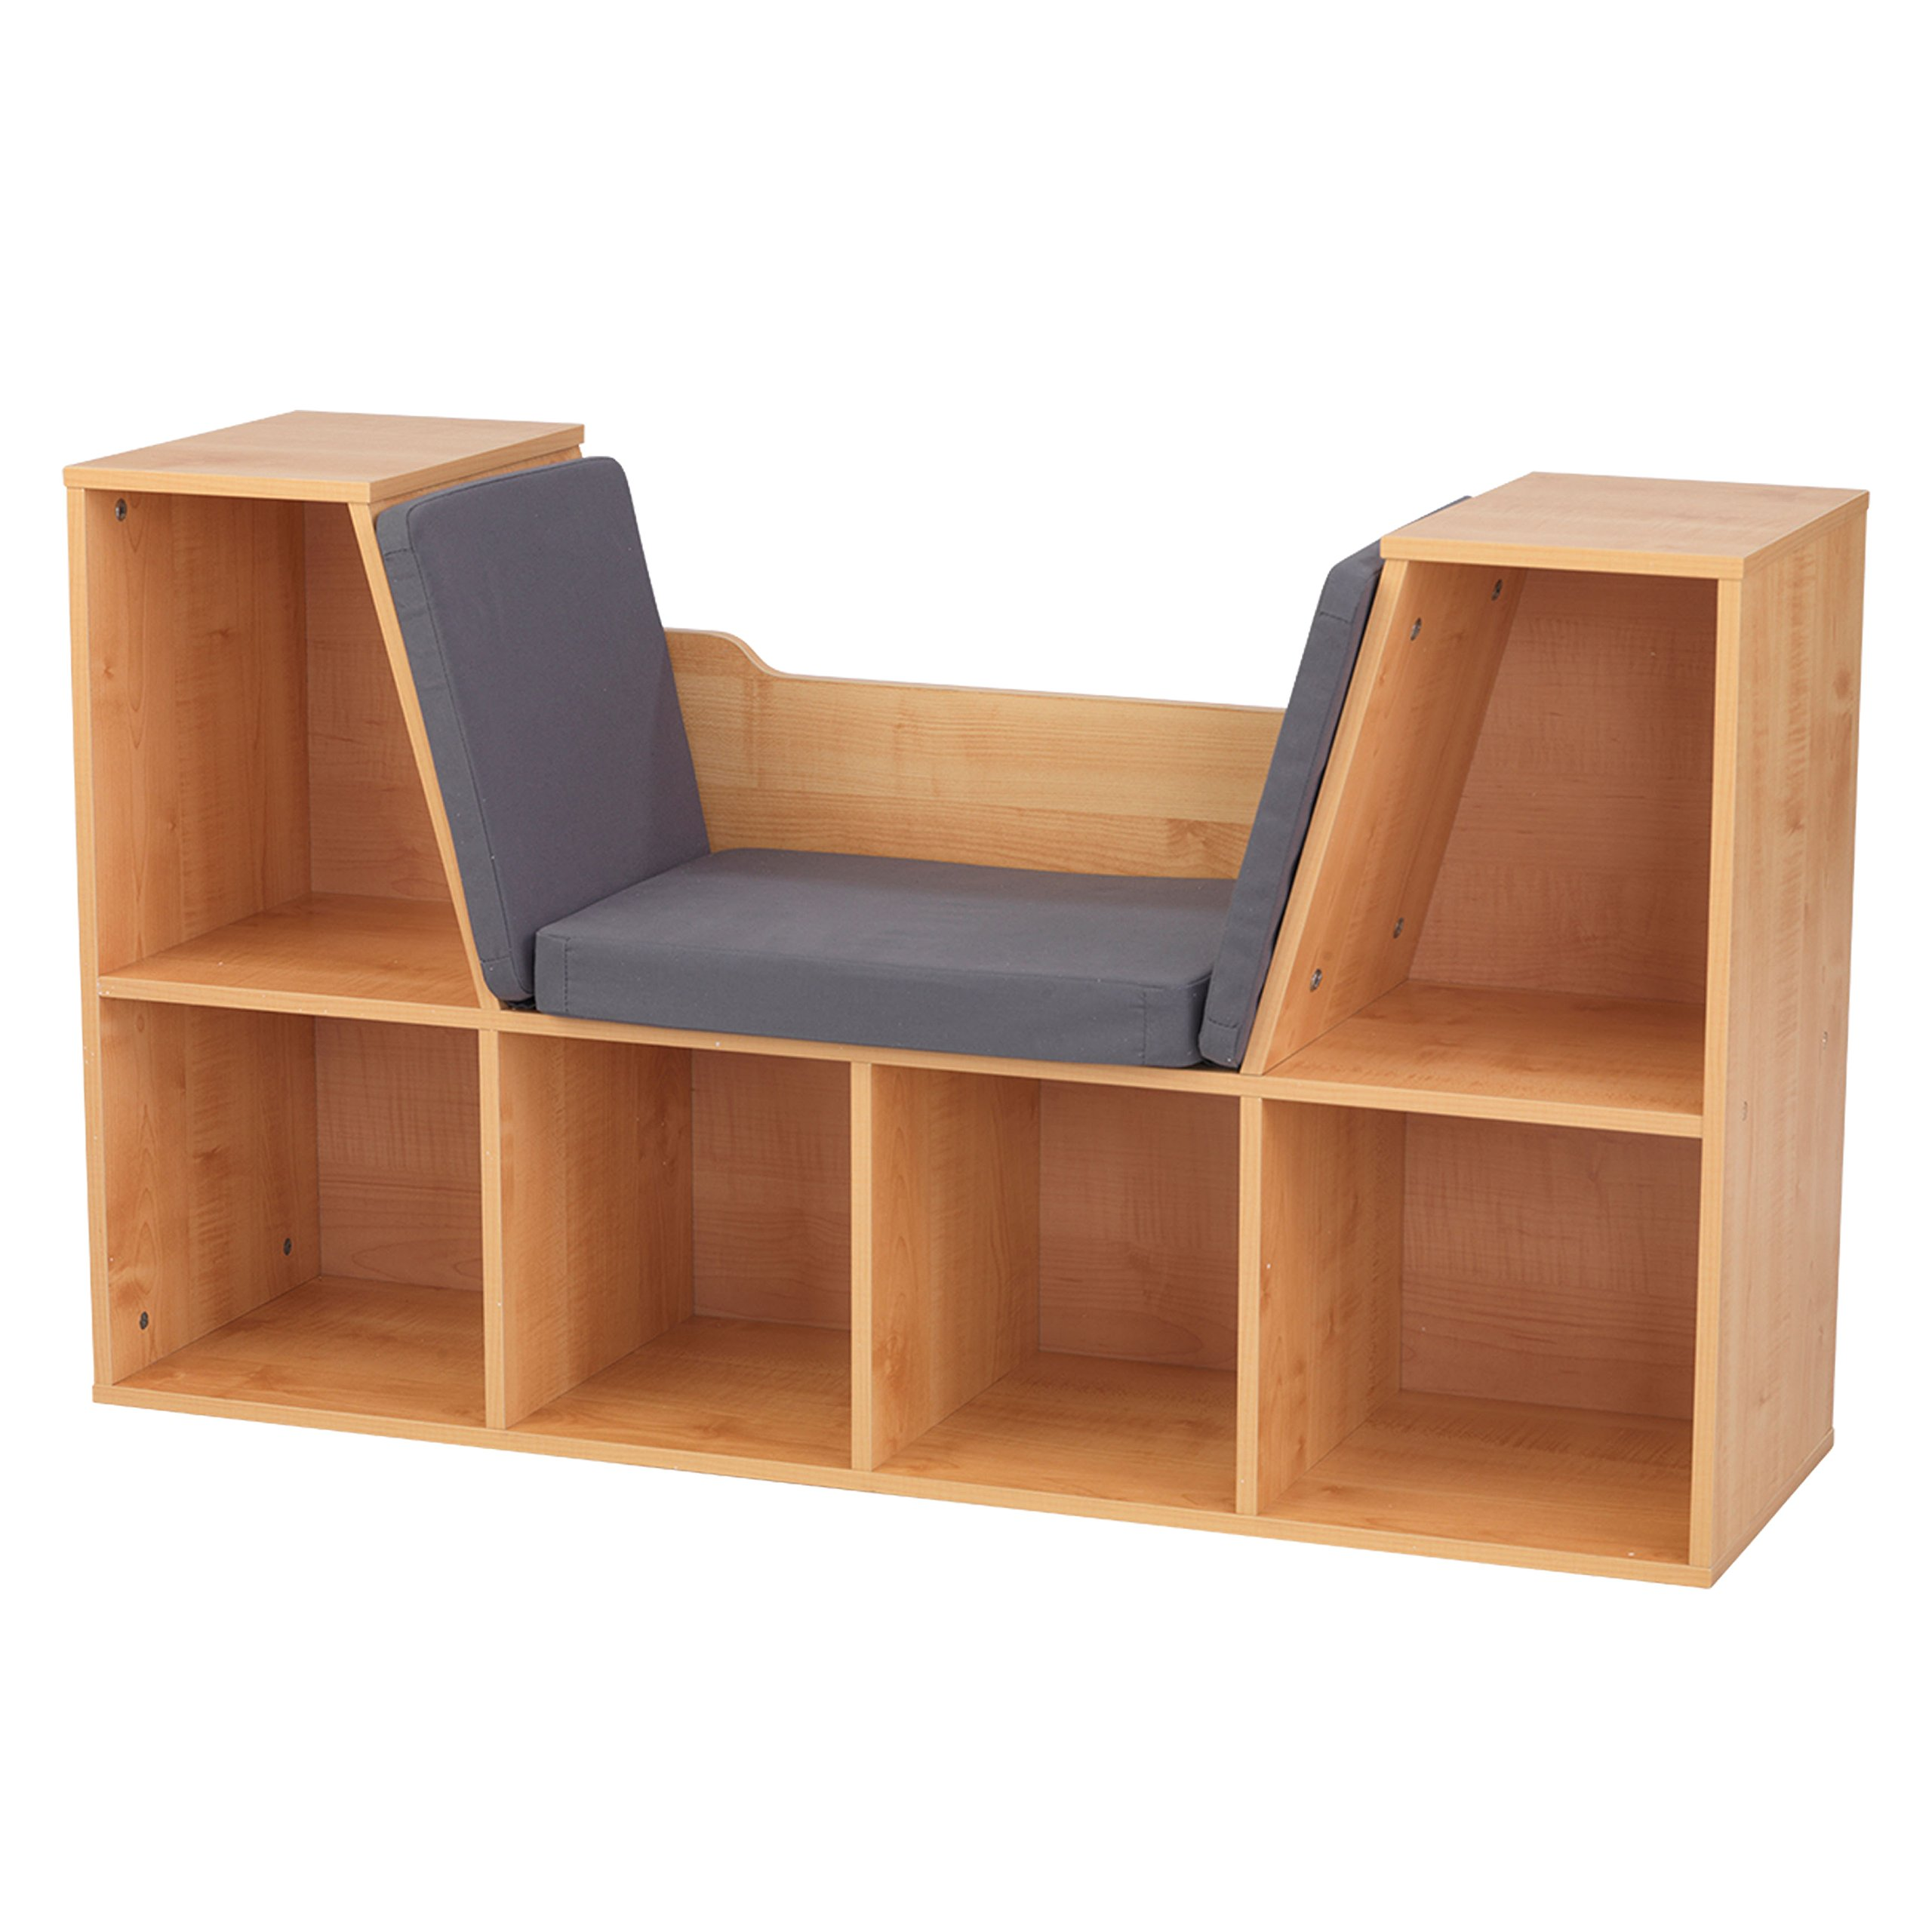 Get Quotations KidKraft Bookcase With Reading Nook Toy Natural